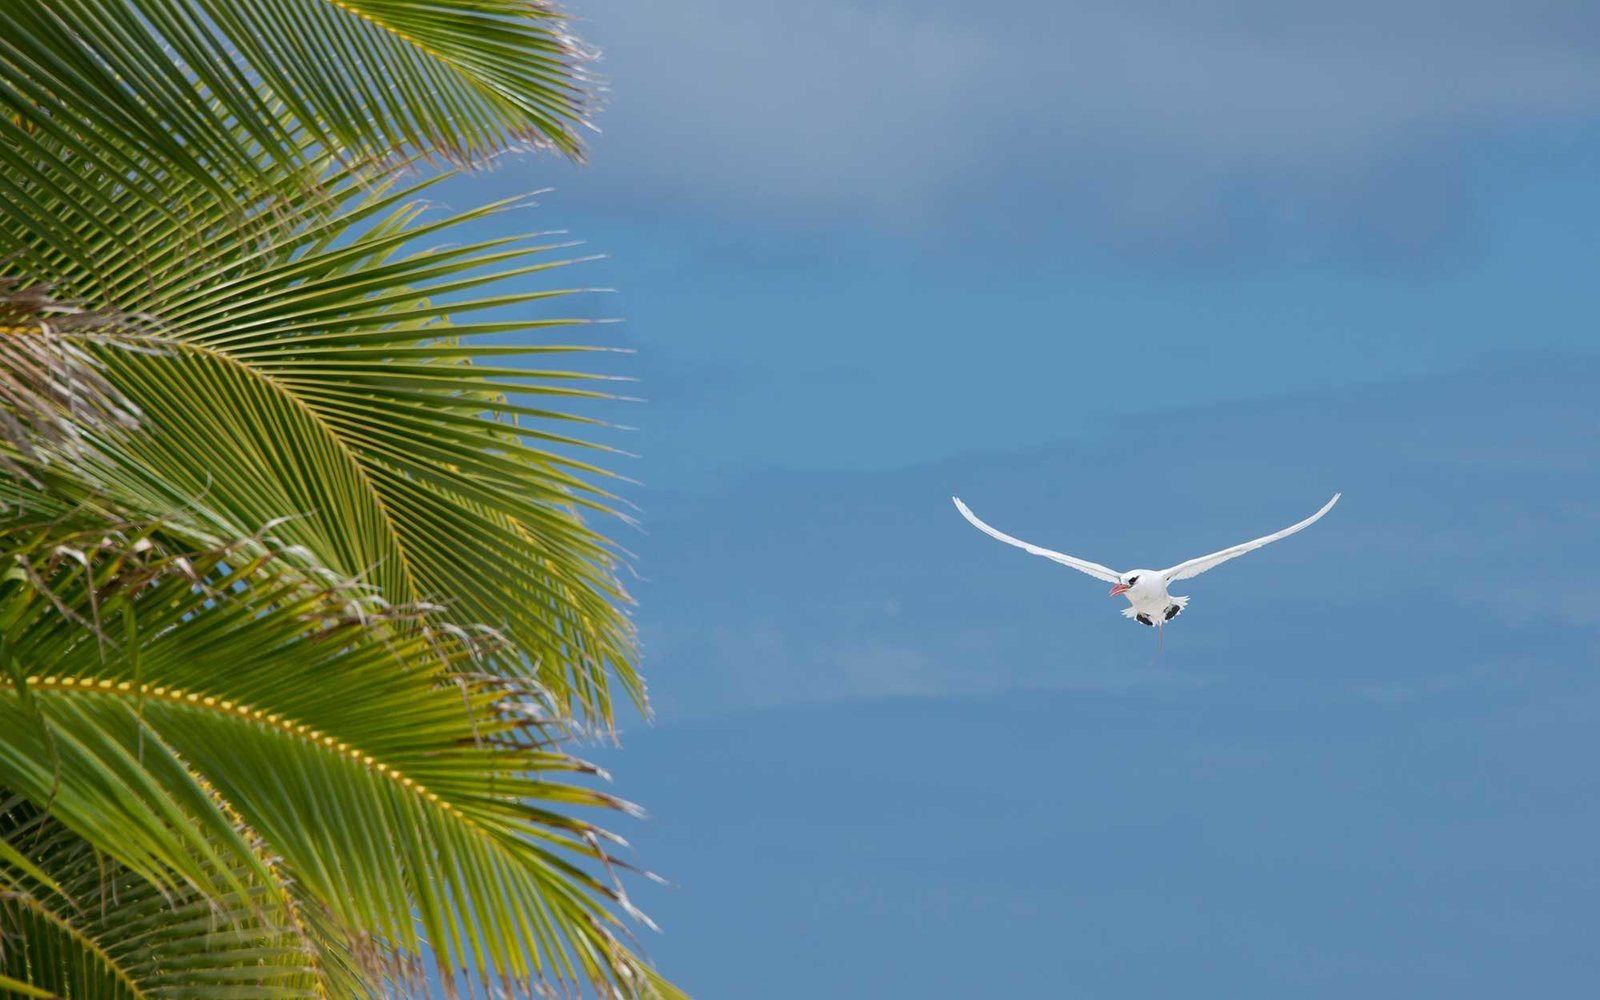 The red-tailed tropicbird